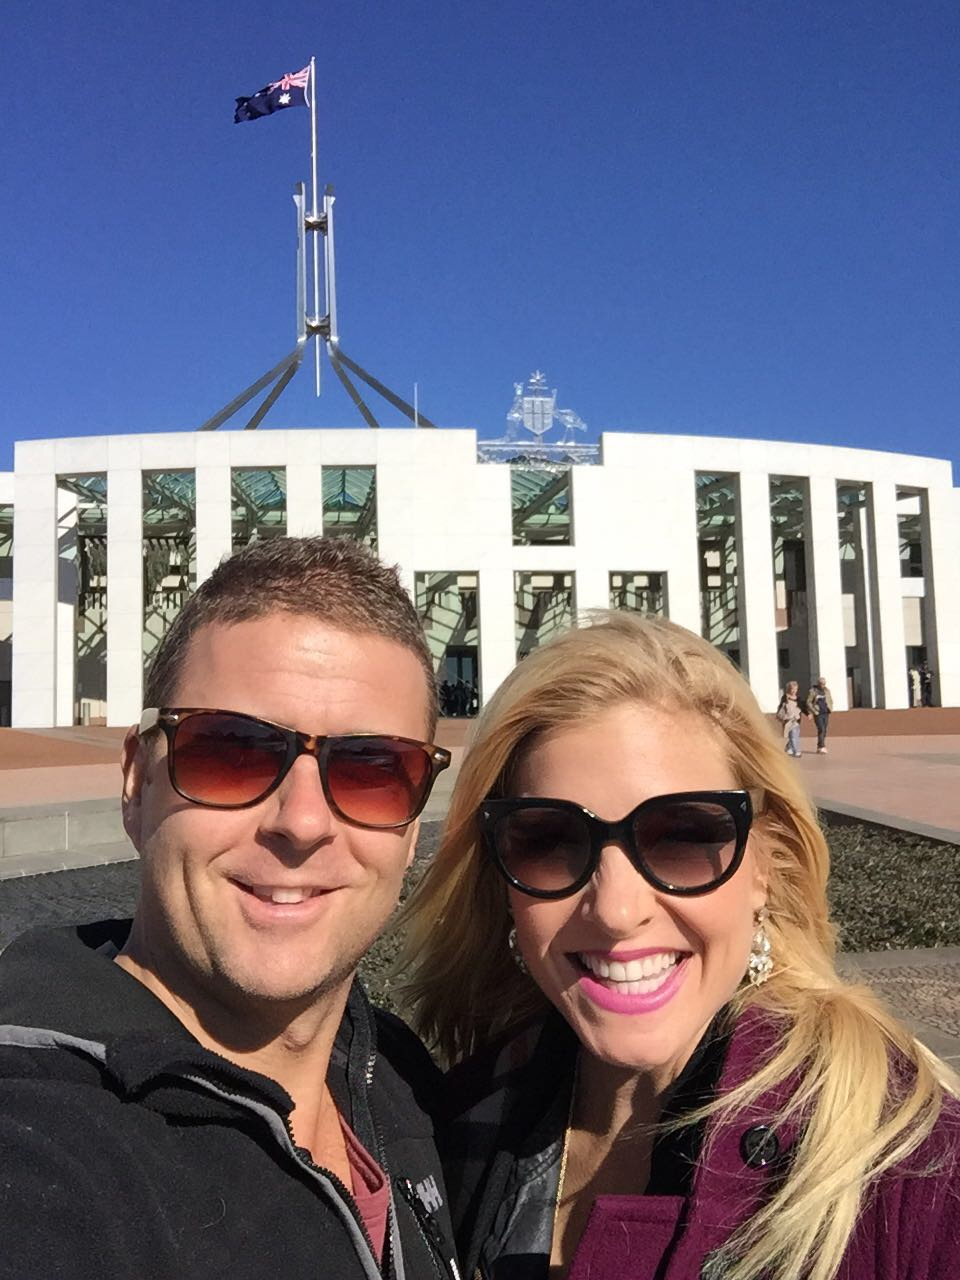 anna and tim parliament house annakooiman.com canberra